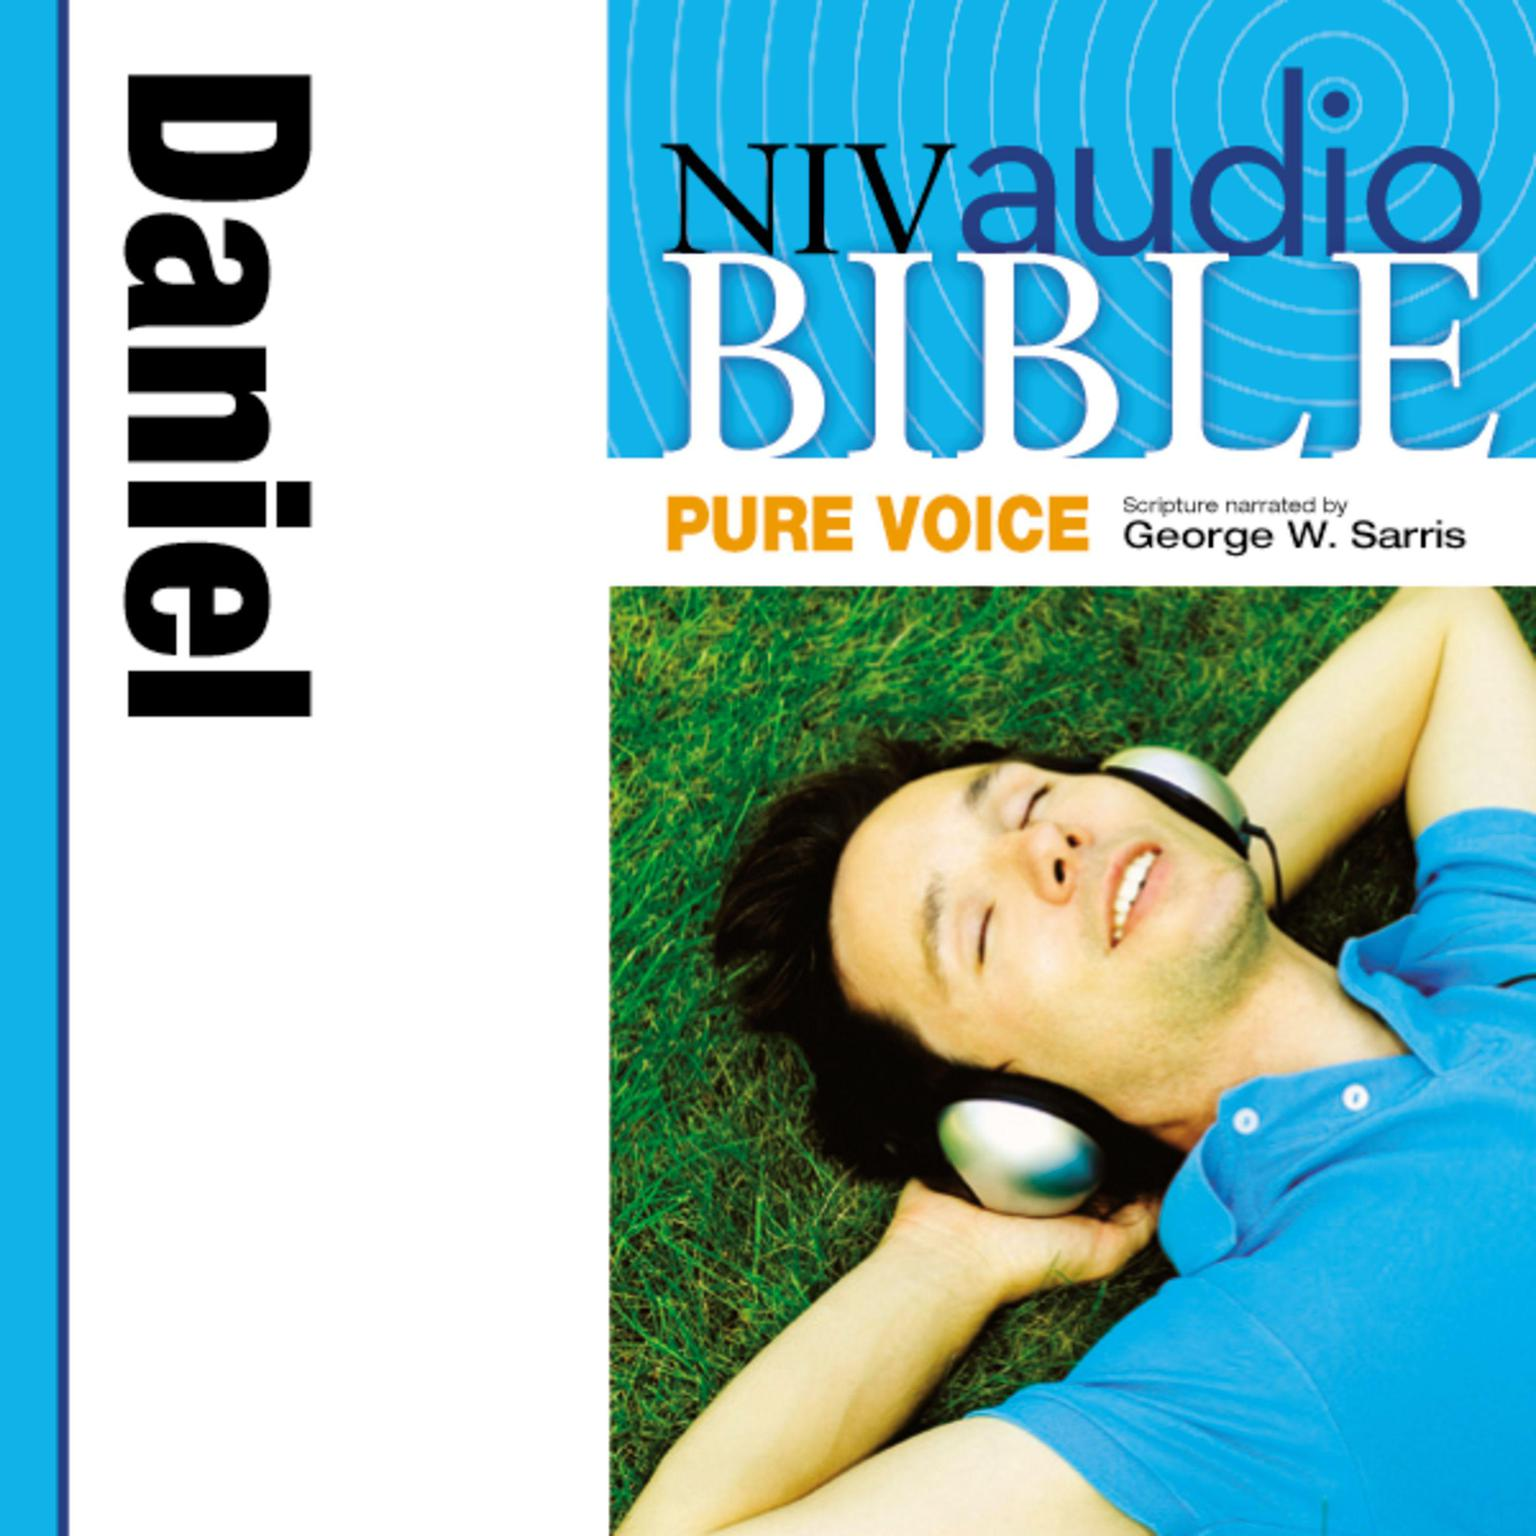 Printable NIV, Audio Bible, Pure Voice: Daniel, Audio Download (Narrated by George W. Sarris) Audiobook Cover Art